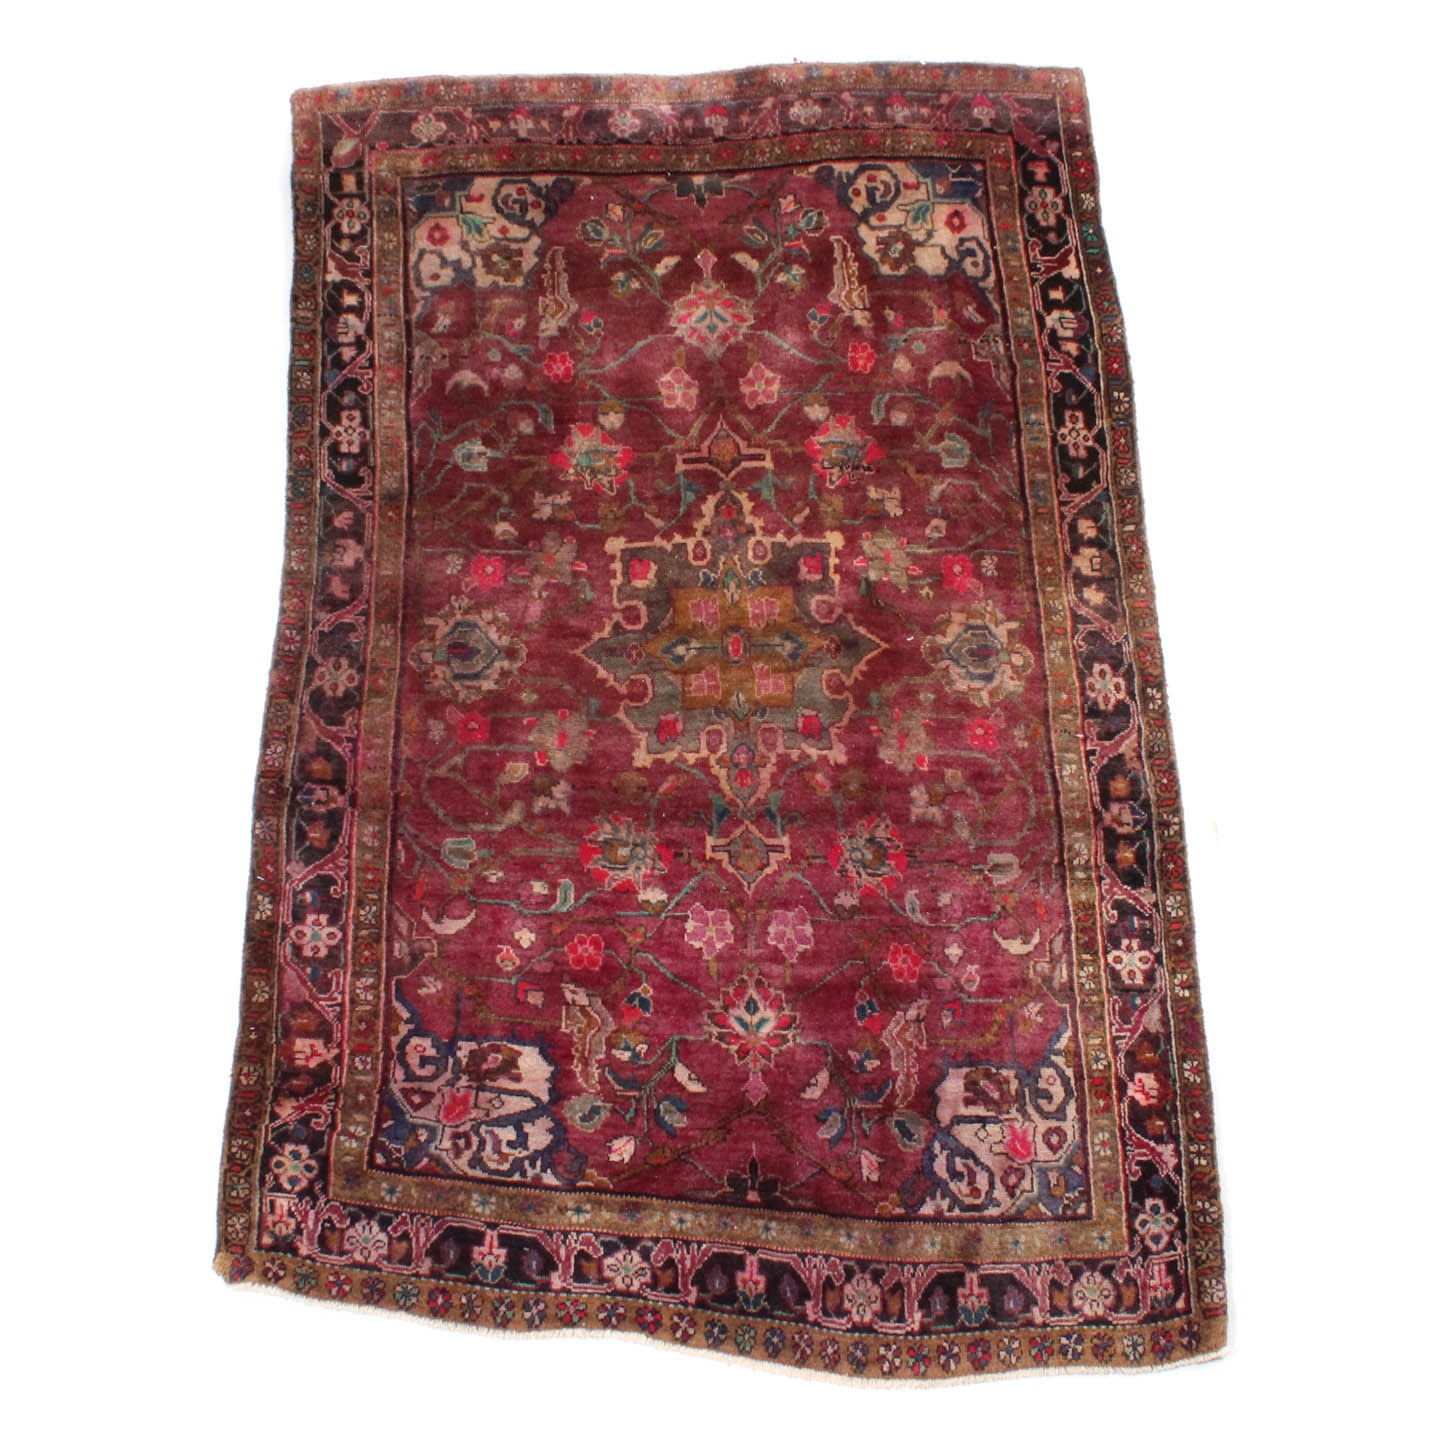 4' x 7' Vintage Hand-Knotted Persian Mallayer Sarouk Area Rug